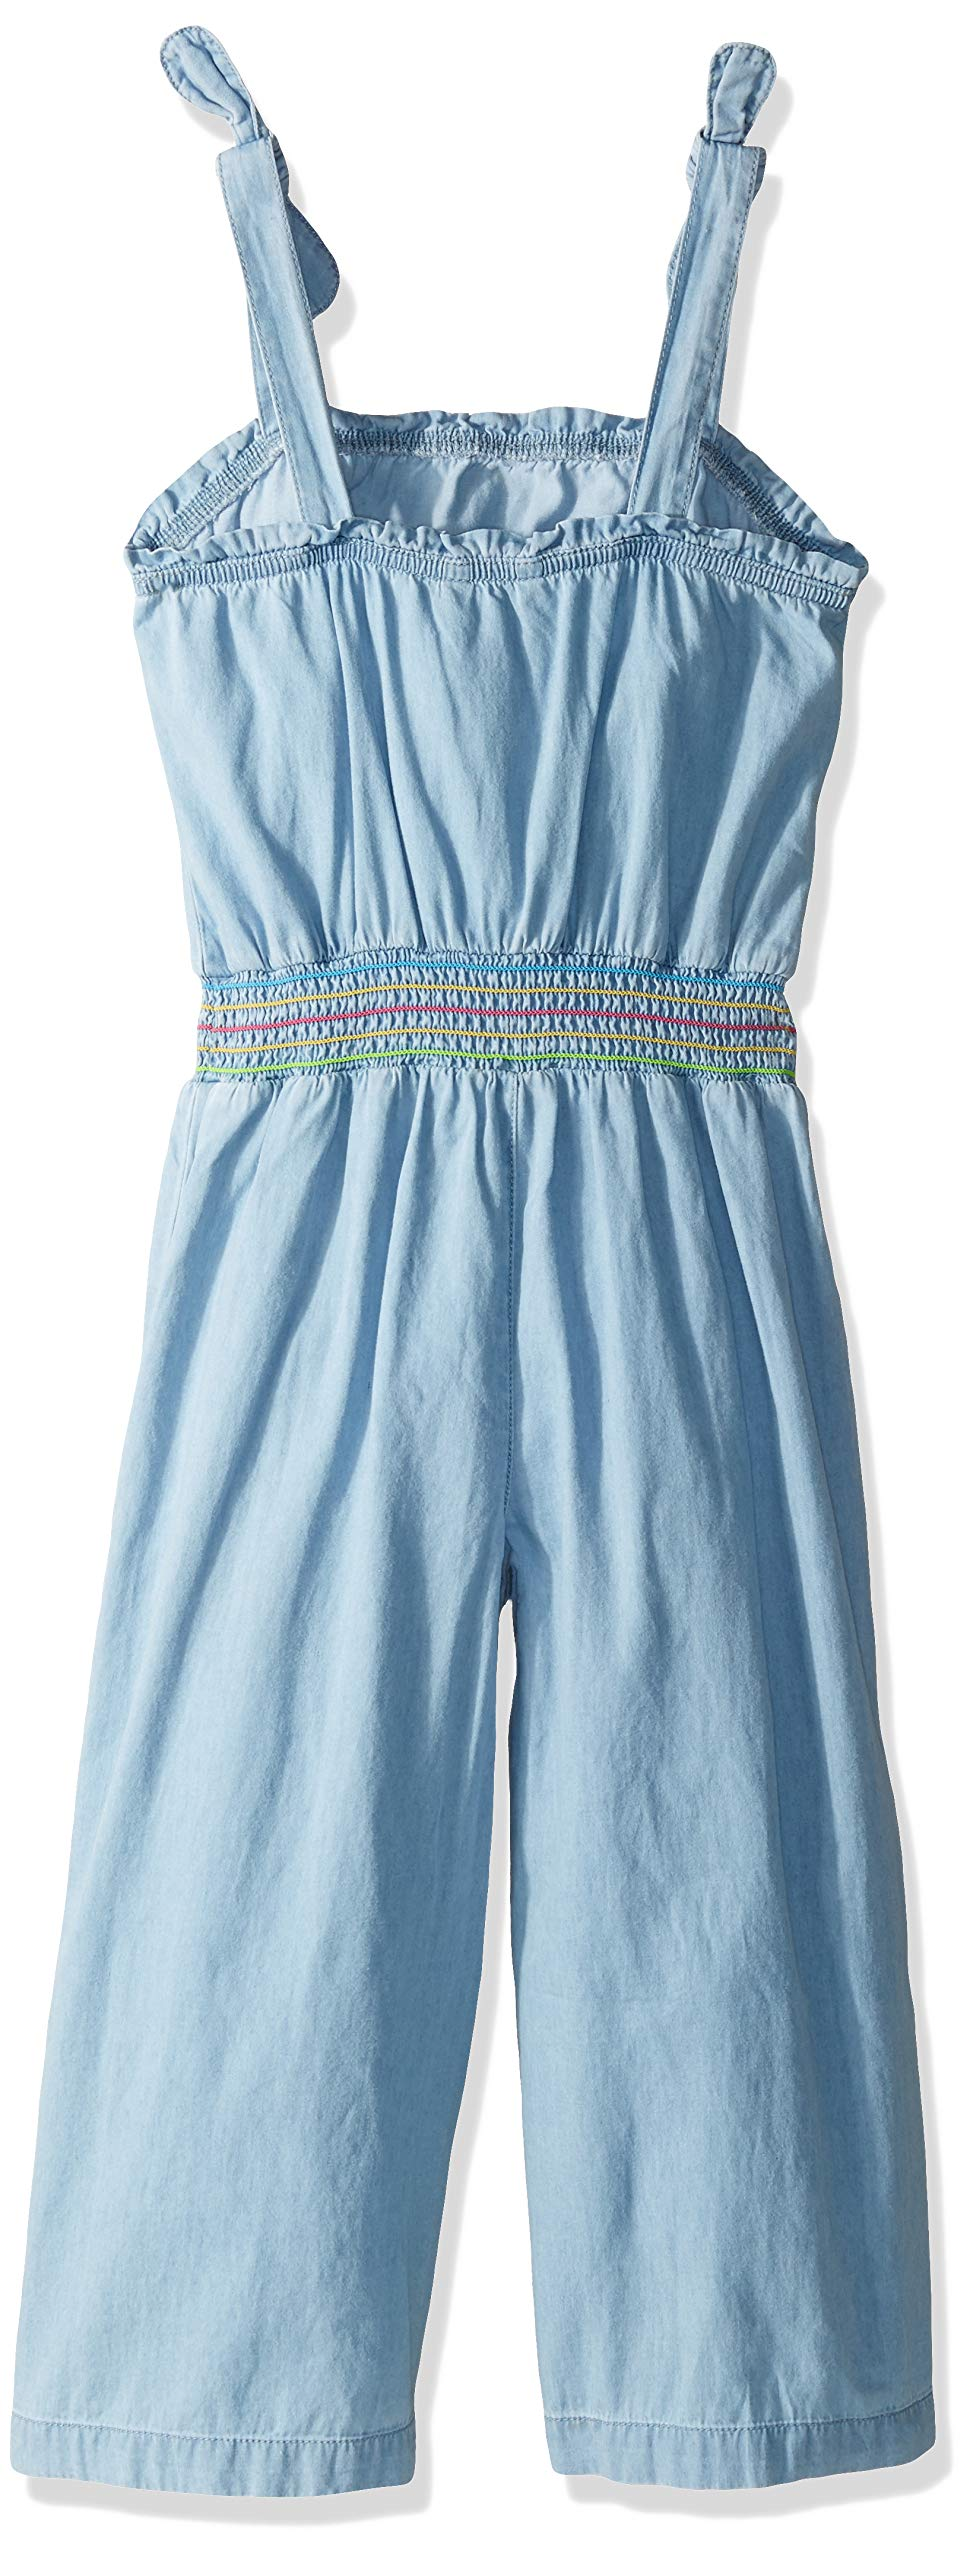 Tommy Hilfiger Big Girl's Big Girls' Fashion Jumpsuit Shorts, denim bowery, S7 by Tommy Hilfiger (Image #2)